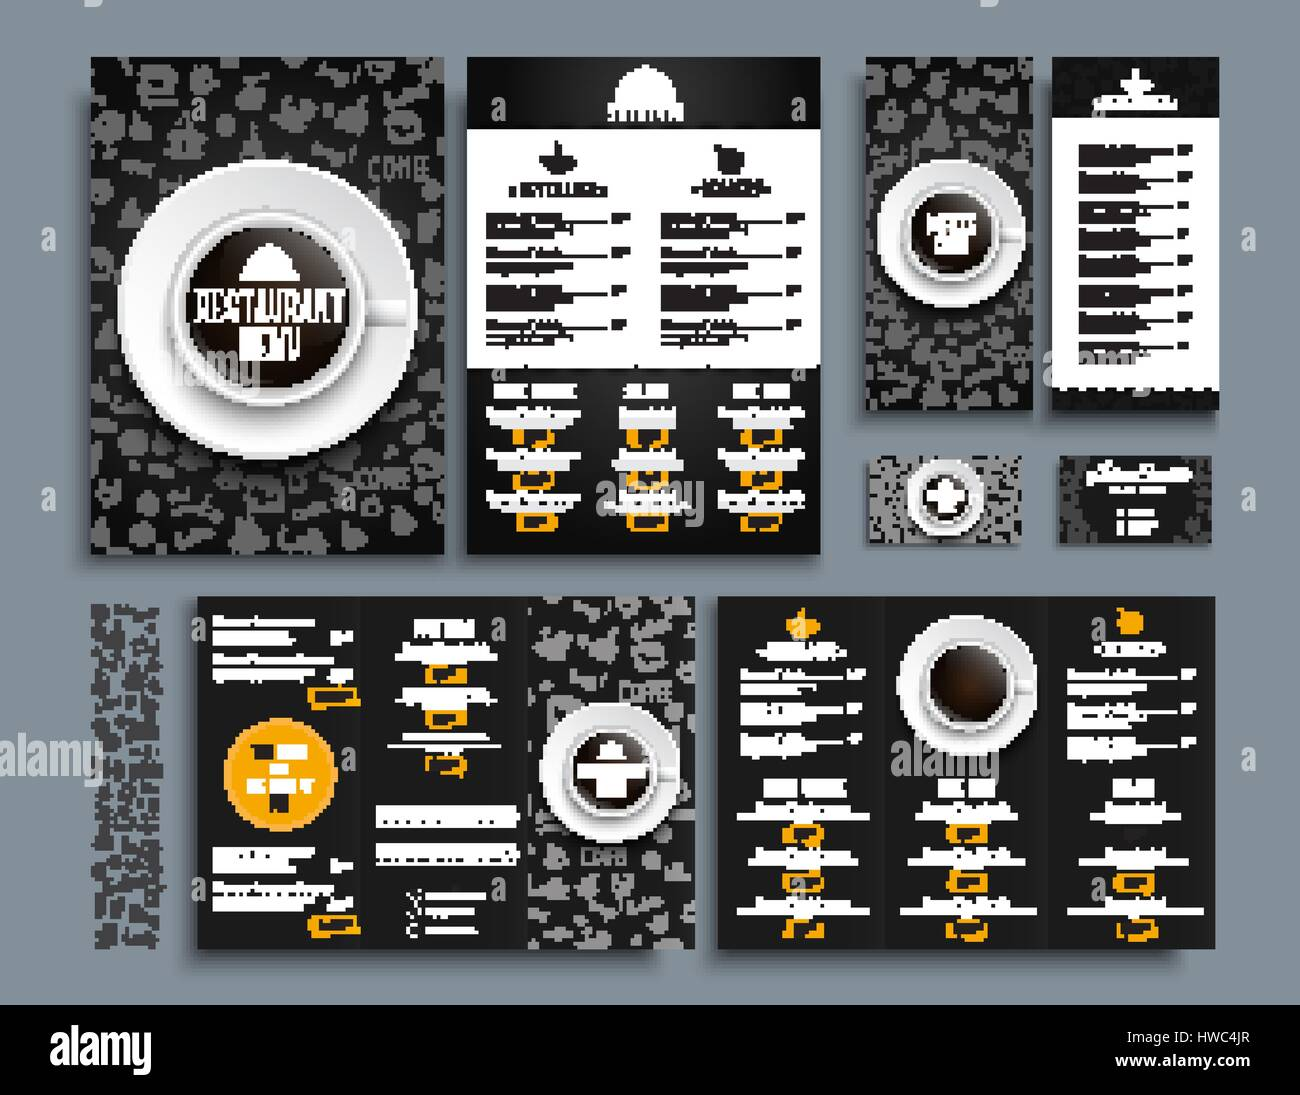 Set of business cards and a4 menu folding brochures and flyers size set of business cards and a4 menu folding brochures and flyers size 210x99 mm for restaurant or cafe templates of black and white style with drawin reheart Choice Image